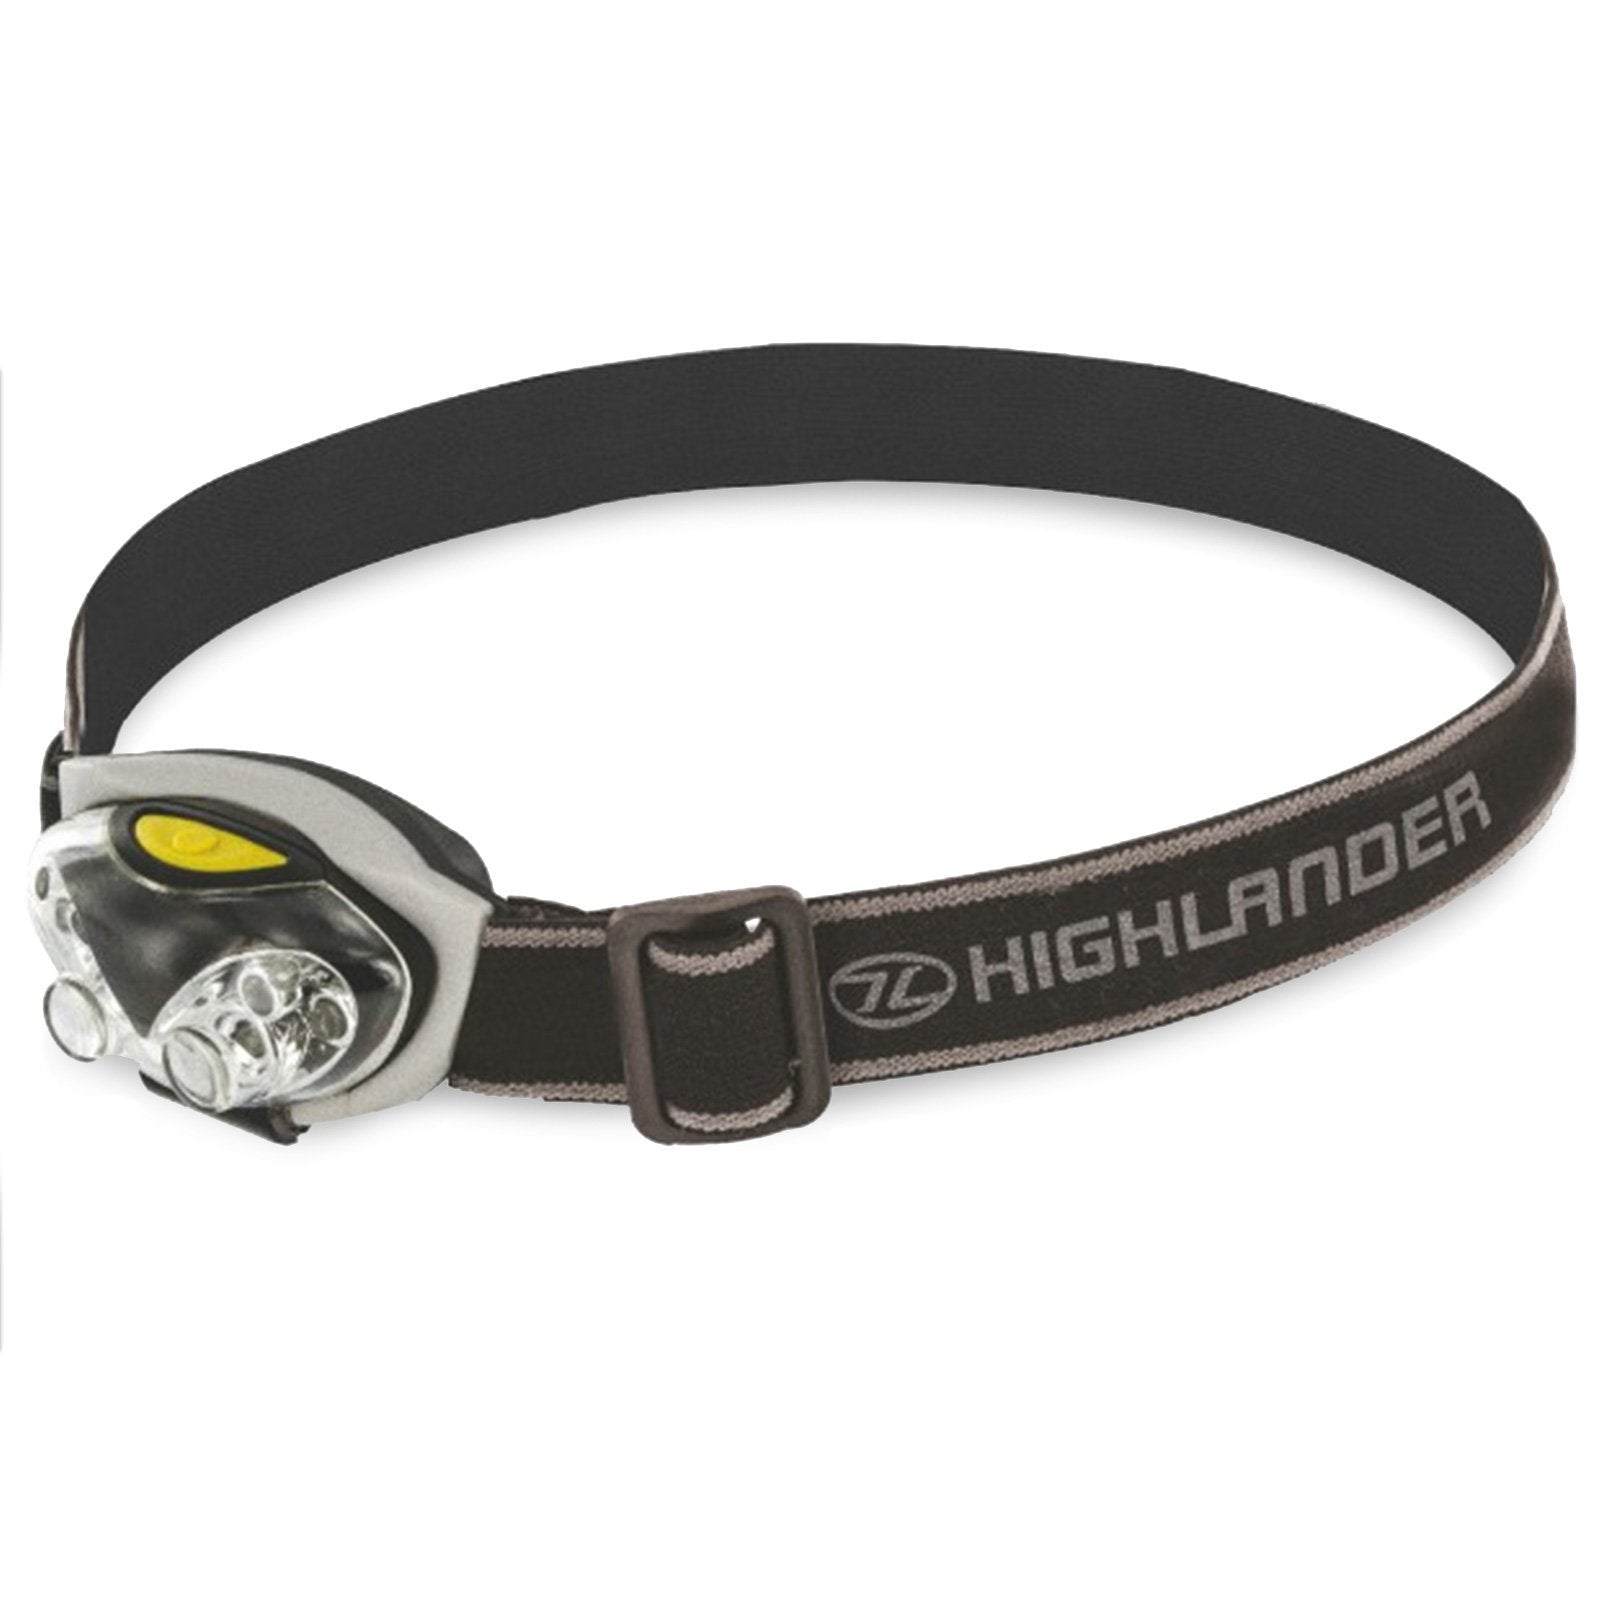 Highlander Spark 4+2 LED Headlamp | UKMCPro